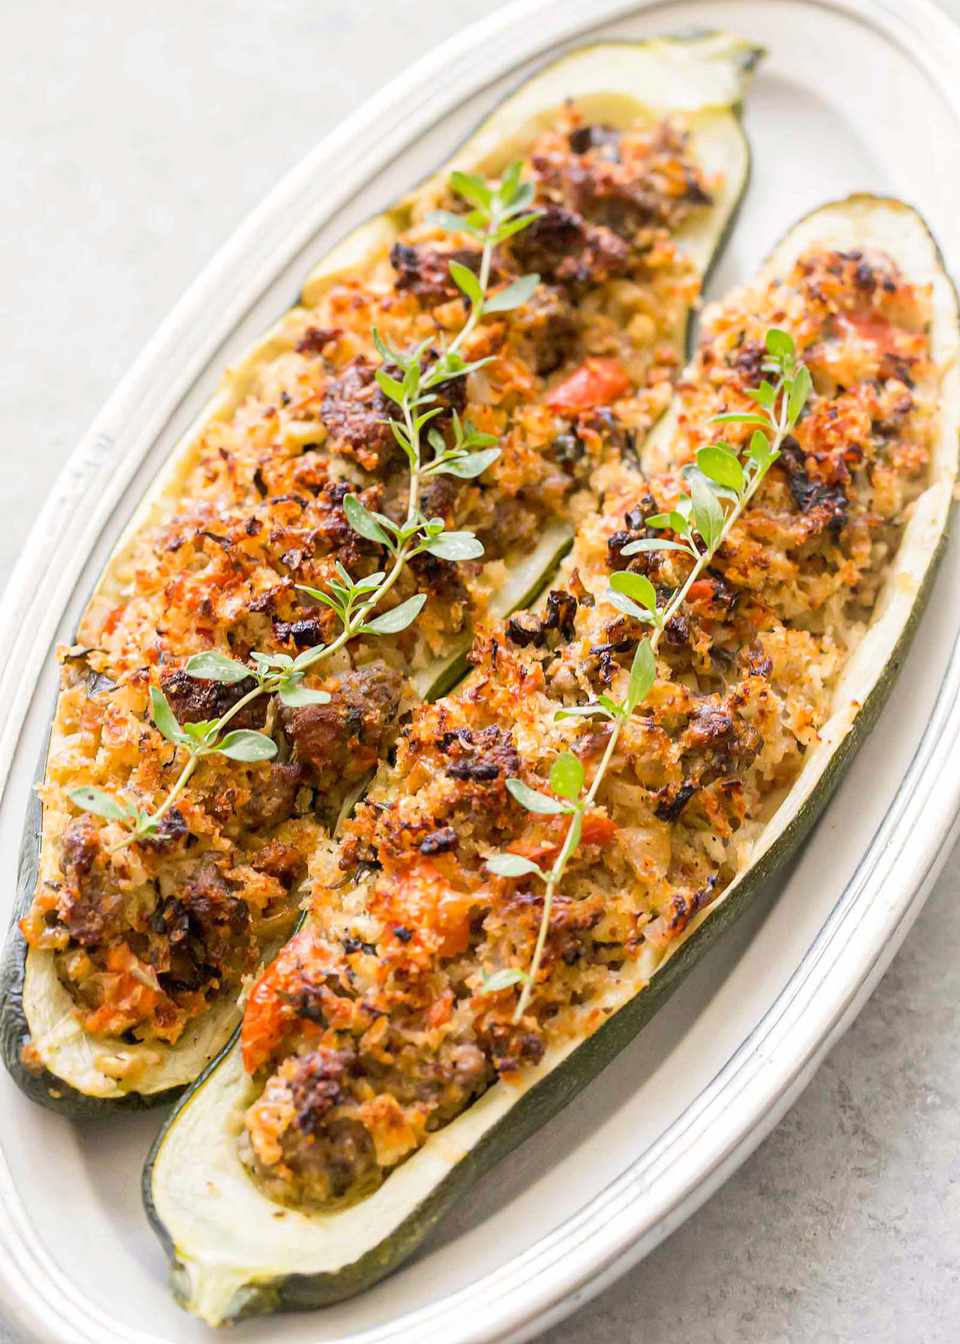 Sausage stuffed zucchini on a platter and topped with a sprig of herbs.